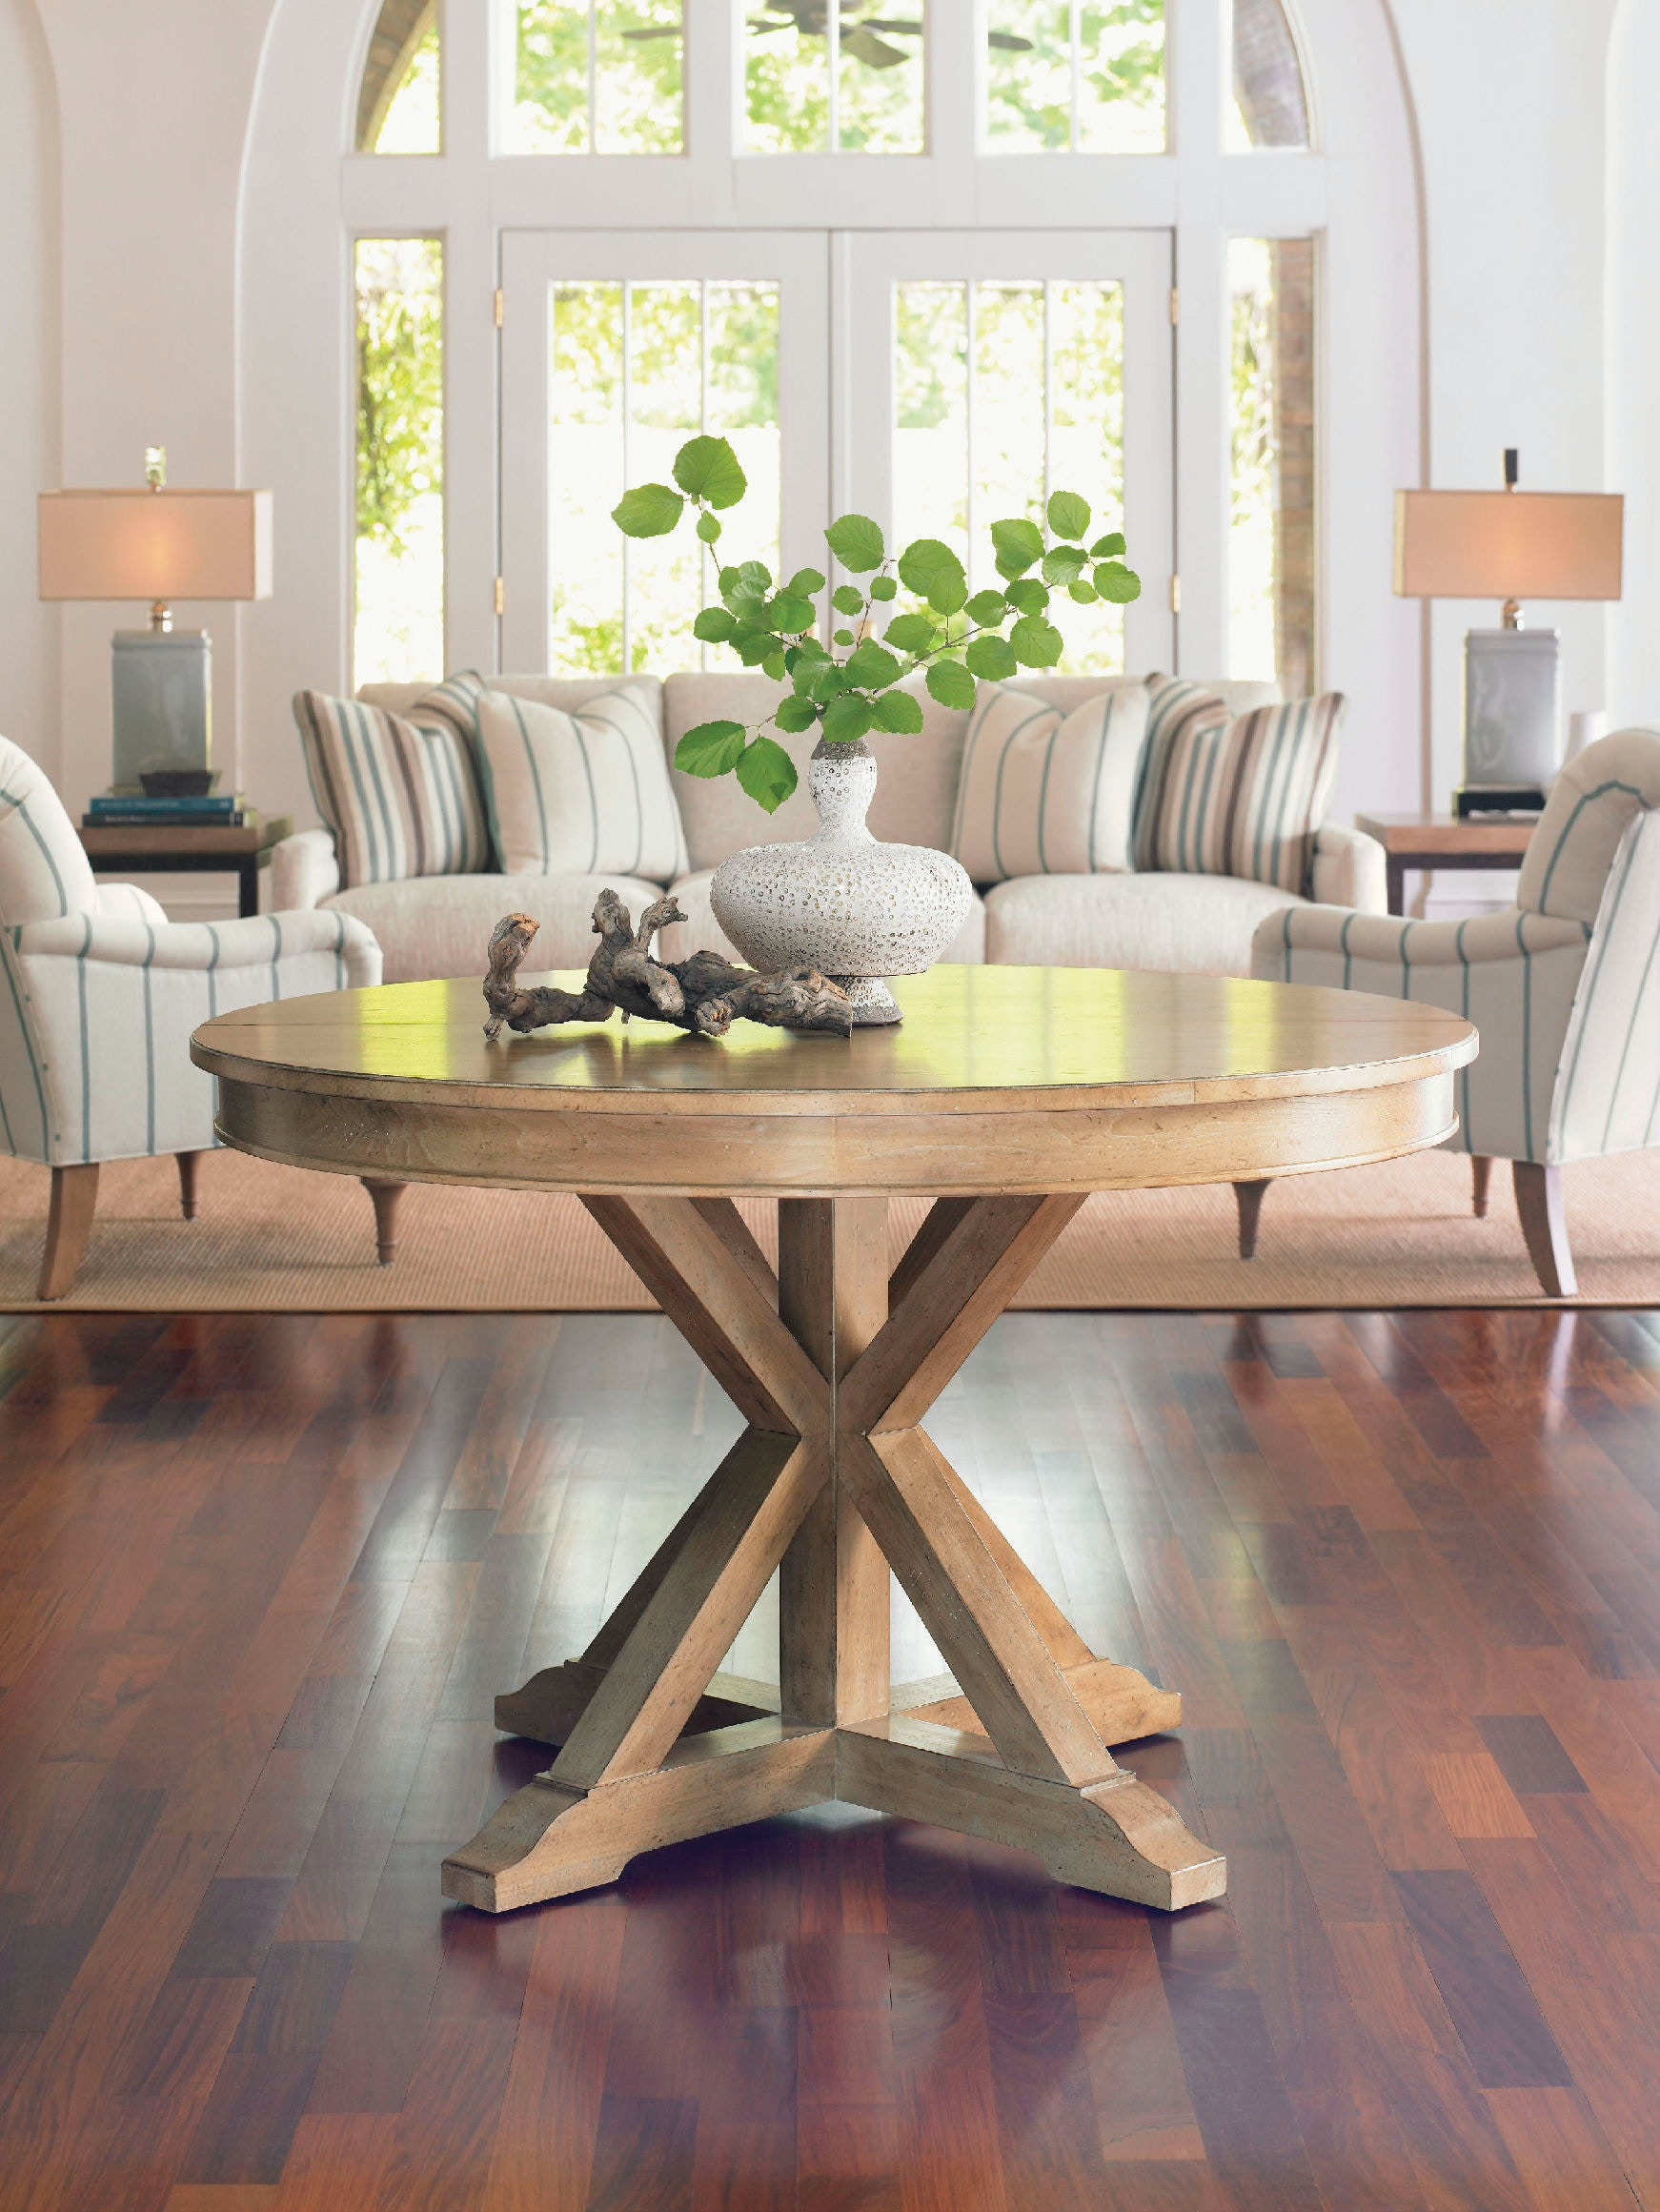 830 870C. San Marcos Dining Table